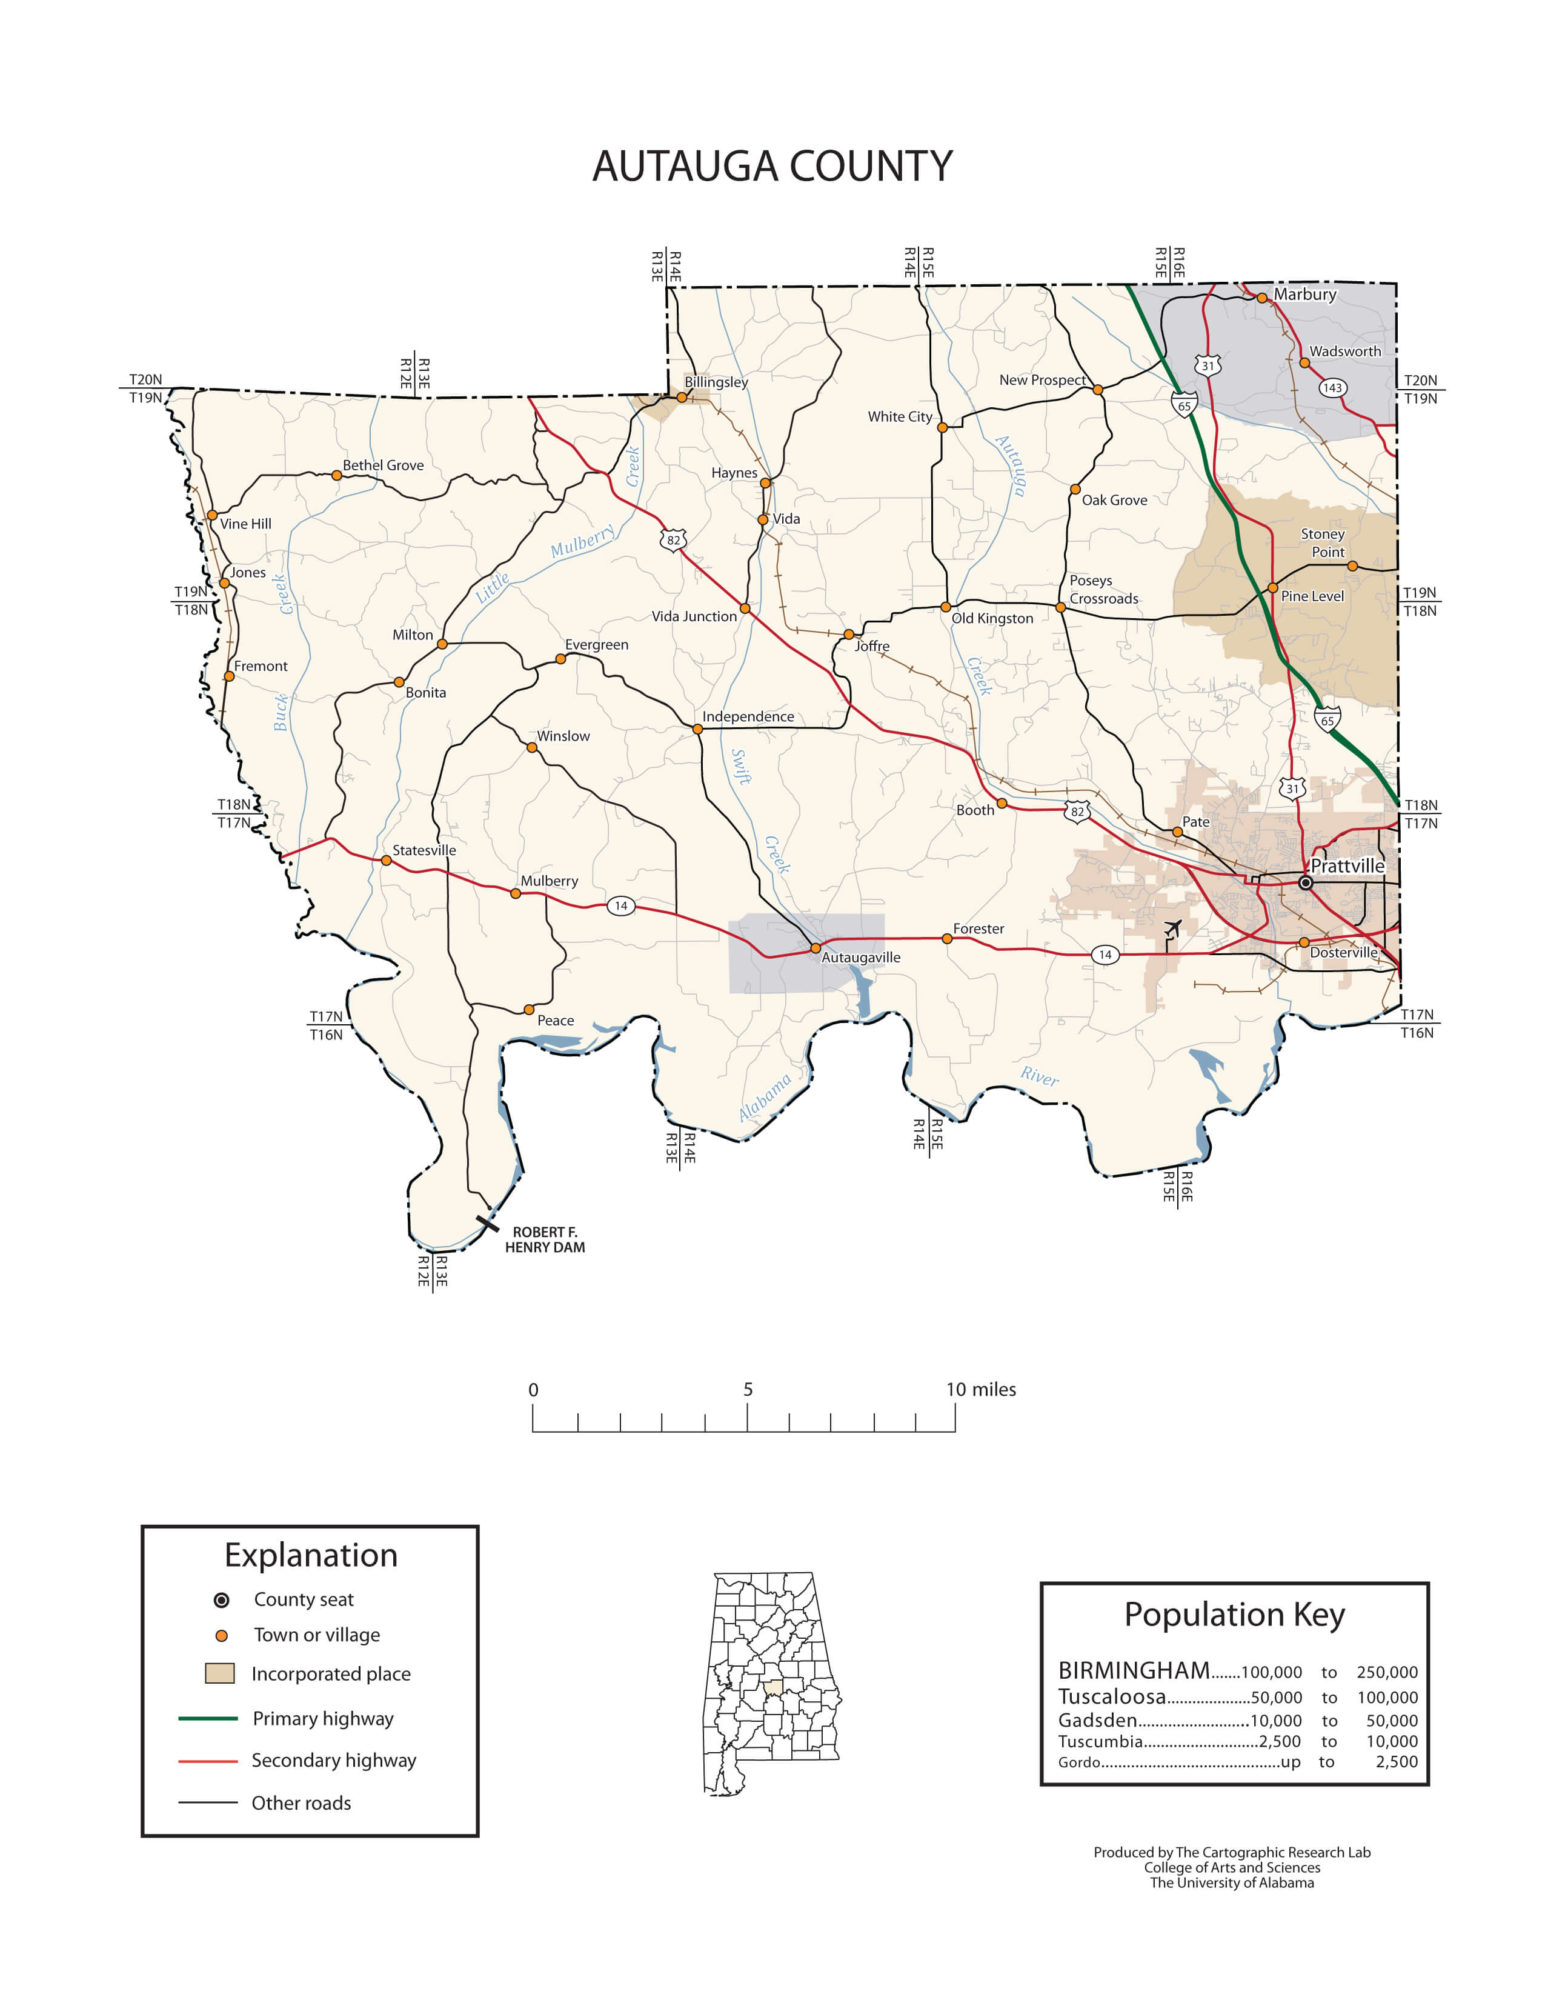 Autauga County Transportation, Road & River Map |  Alabama State – Large, Printable Map